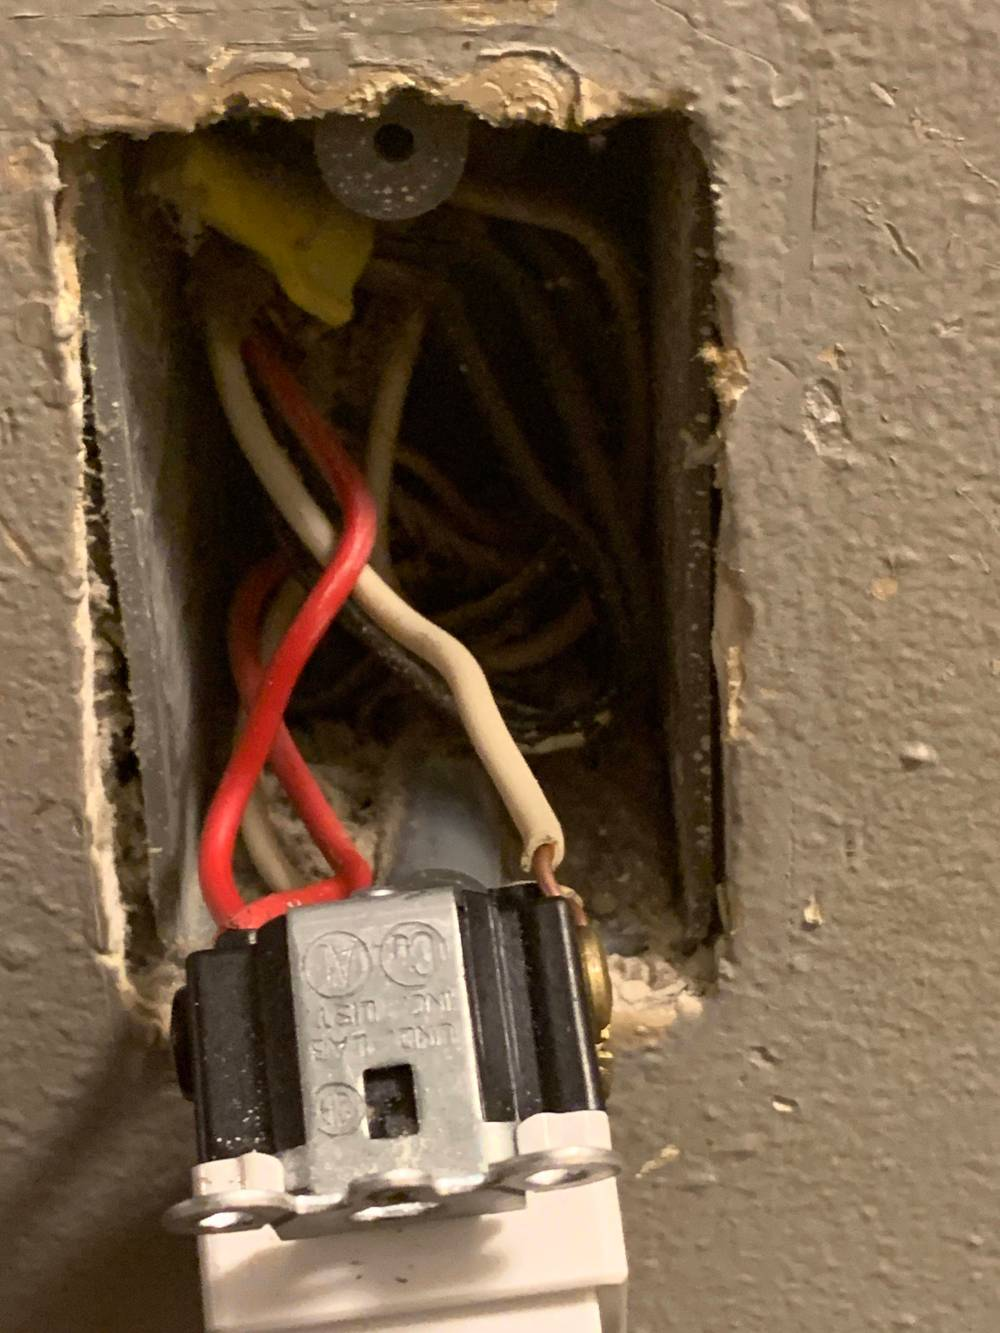 medium resolution of how do i wire my 4 way switch home improvement stack exchange controlled by fourway switch wiring home improvement stack exchange